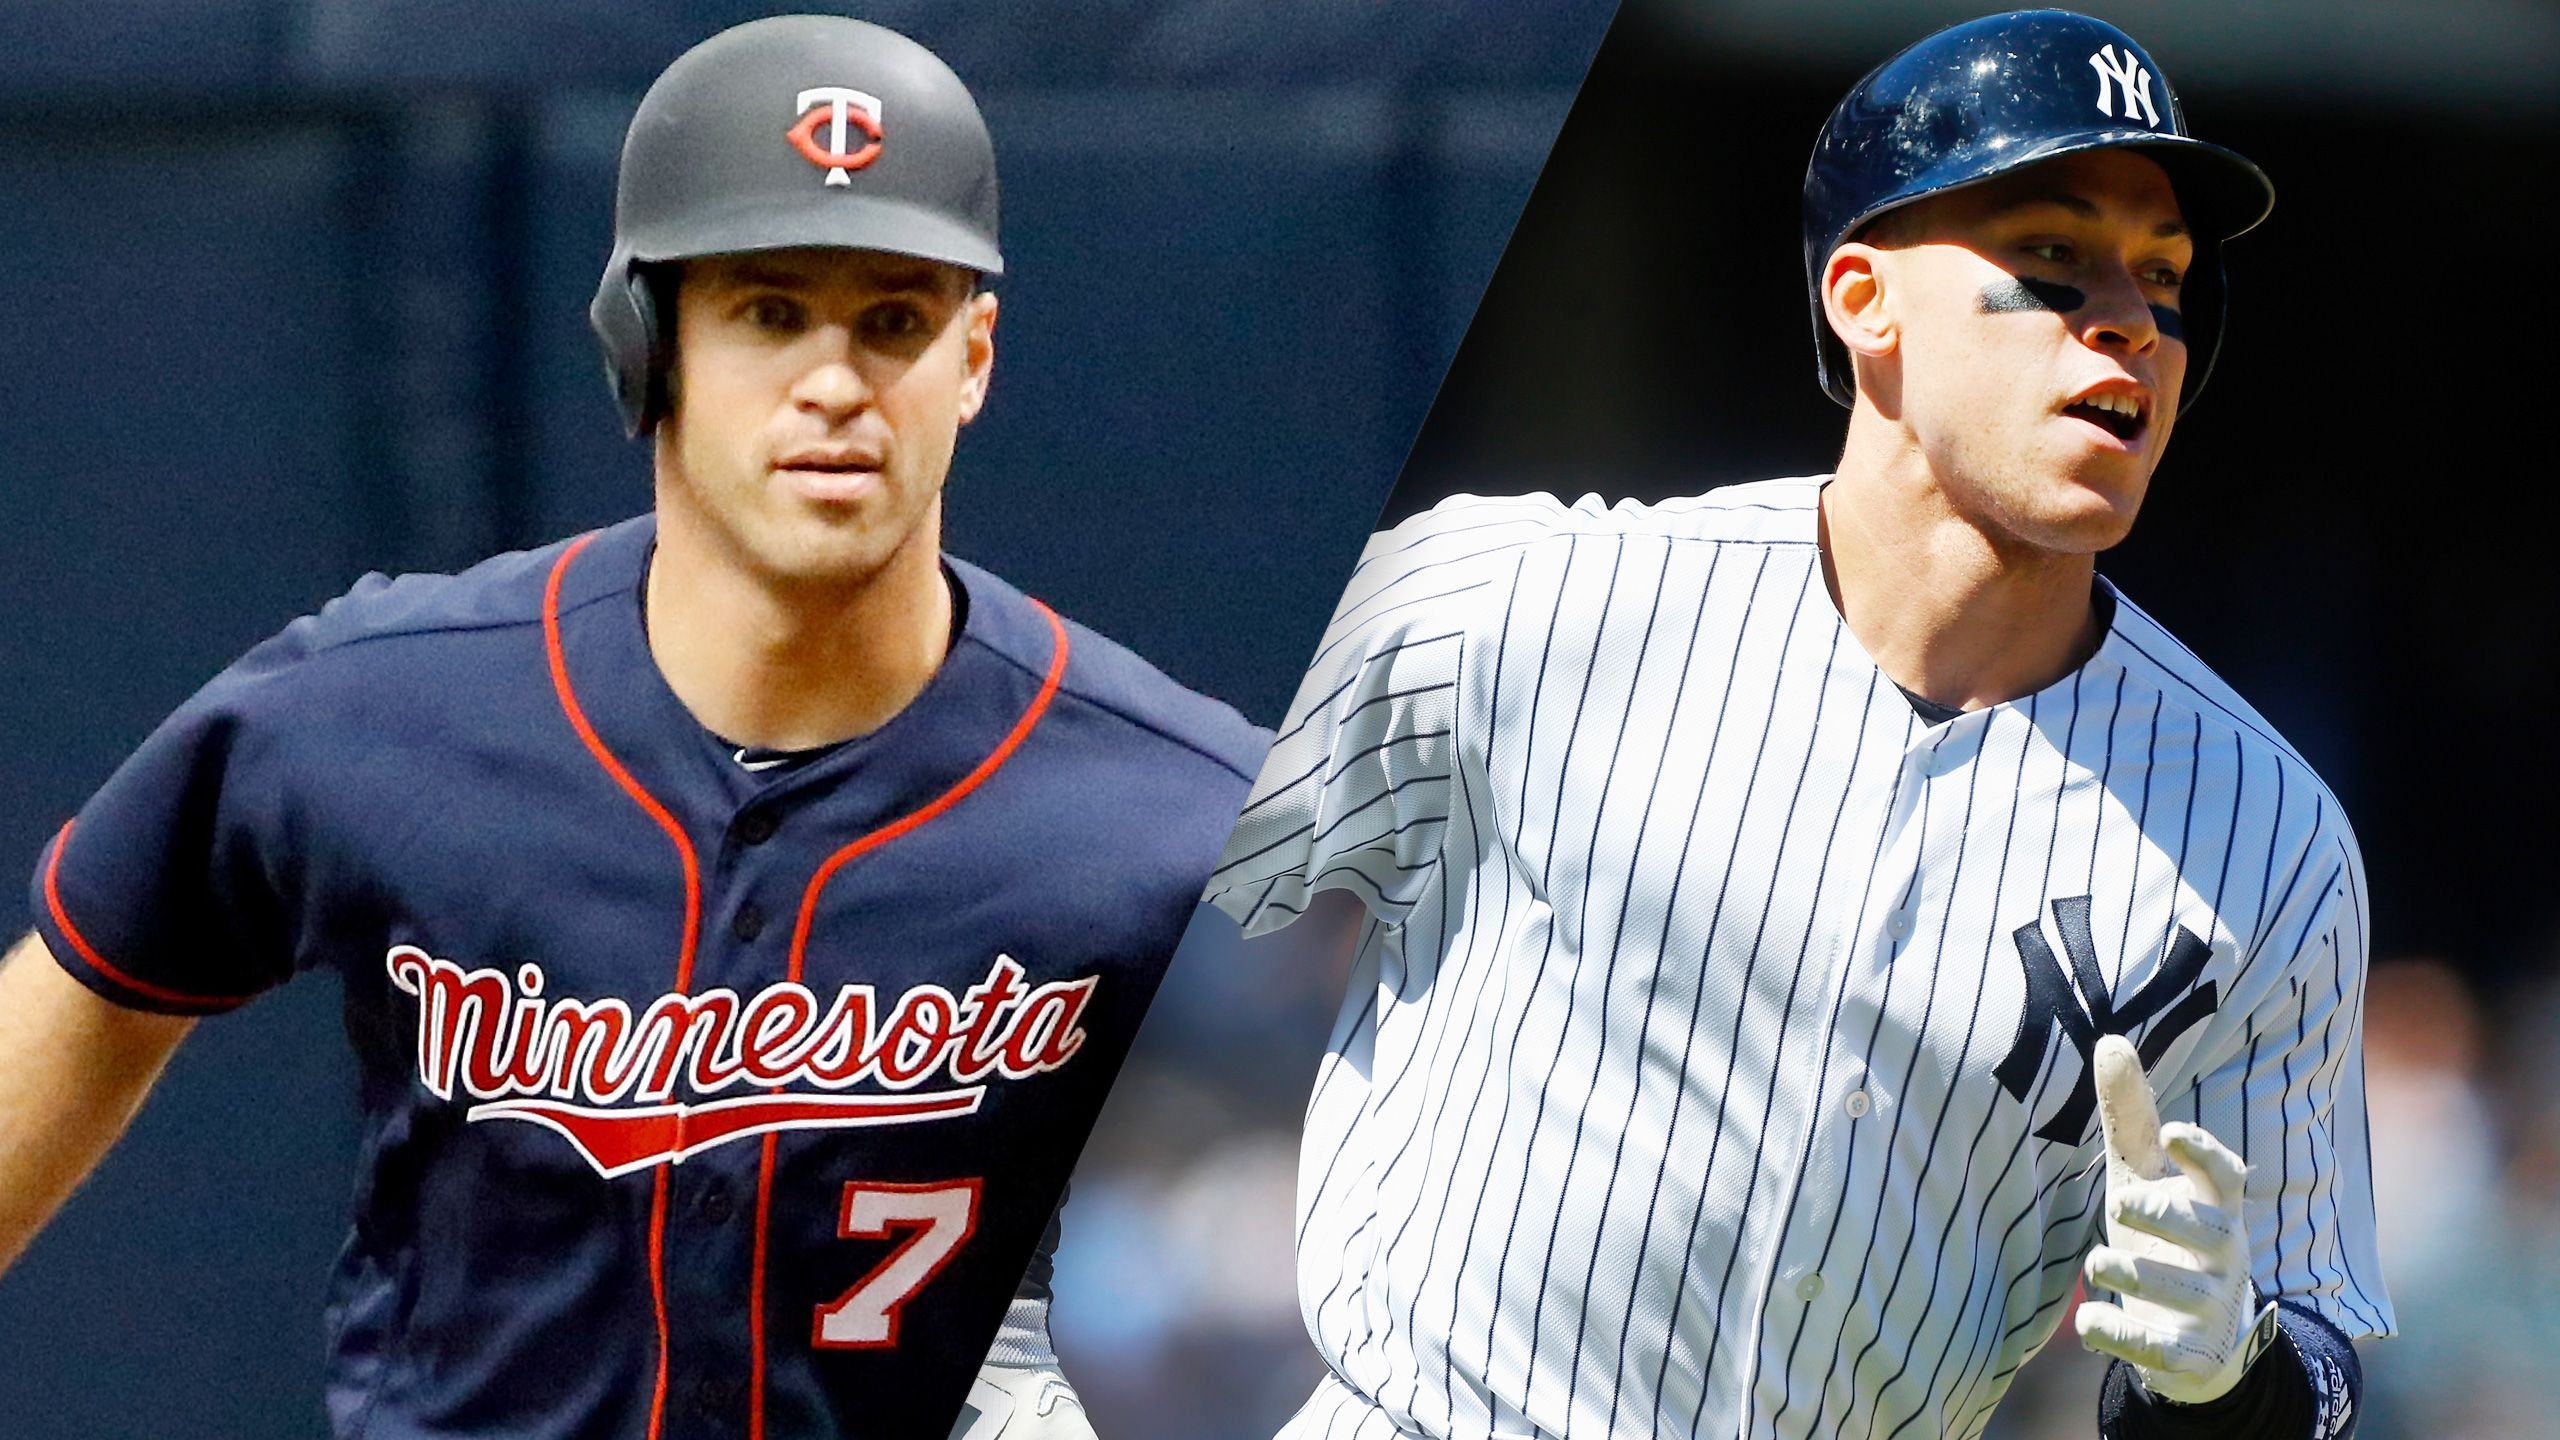 Minnesota Twins vs. New York Yankees (re-air)